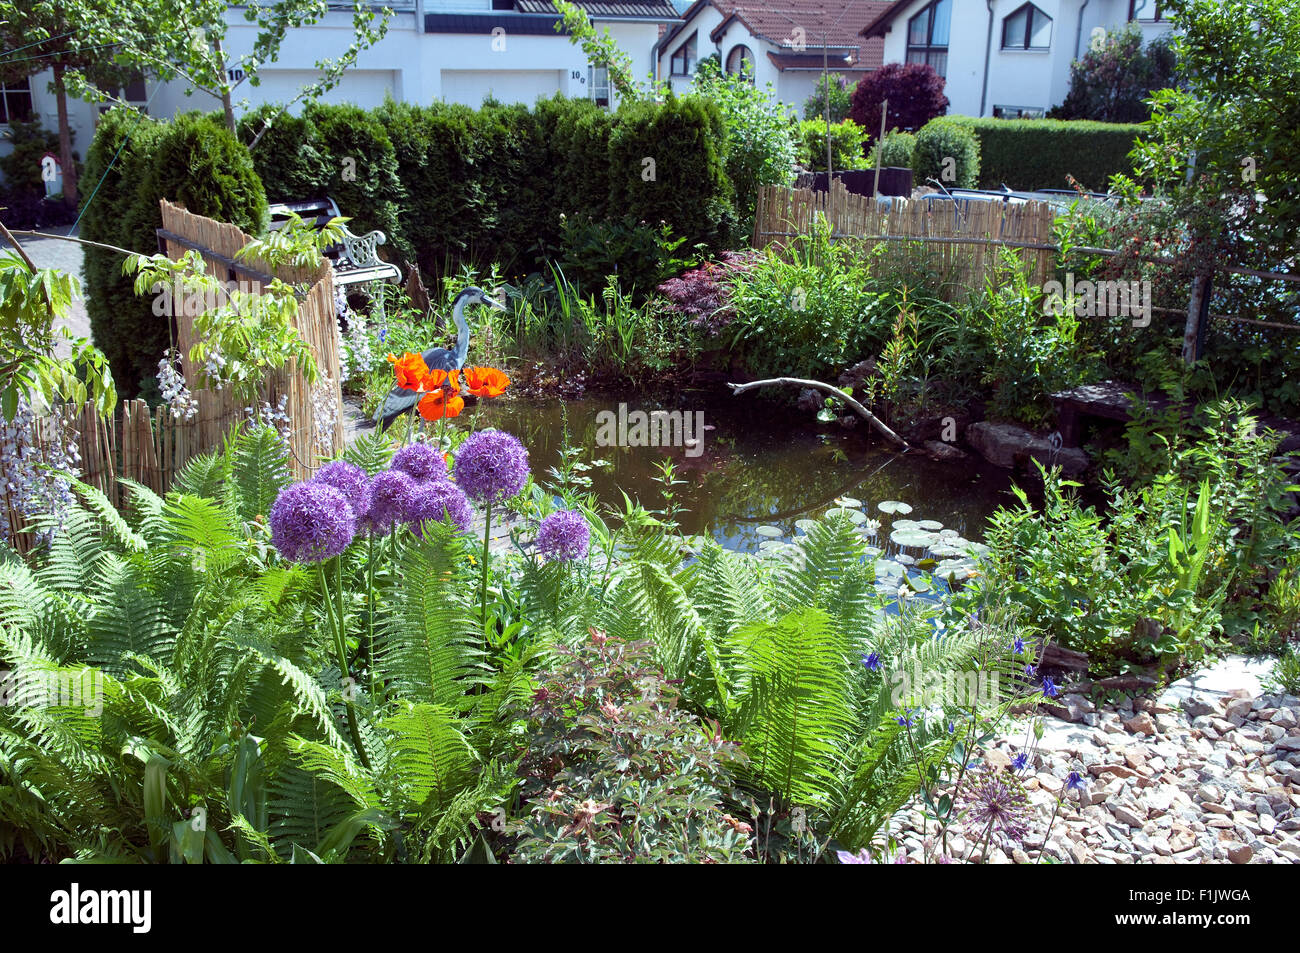 Gartenteich  Gartenteich; Wasser; Wasserpflanze Stock Photo, Royalty Free Image ...